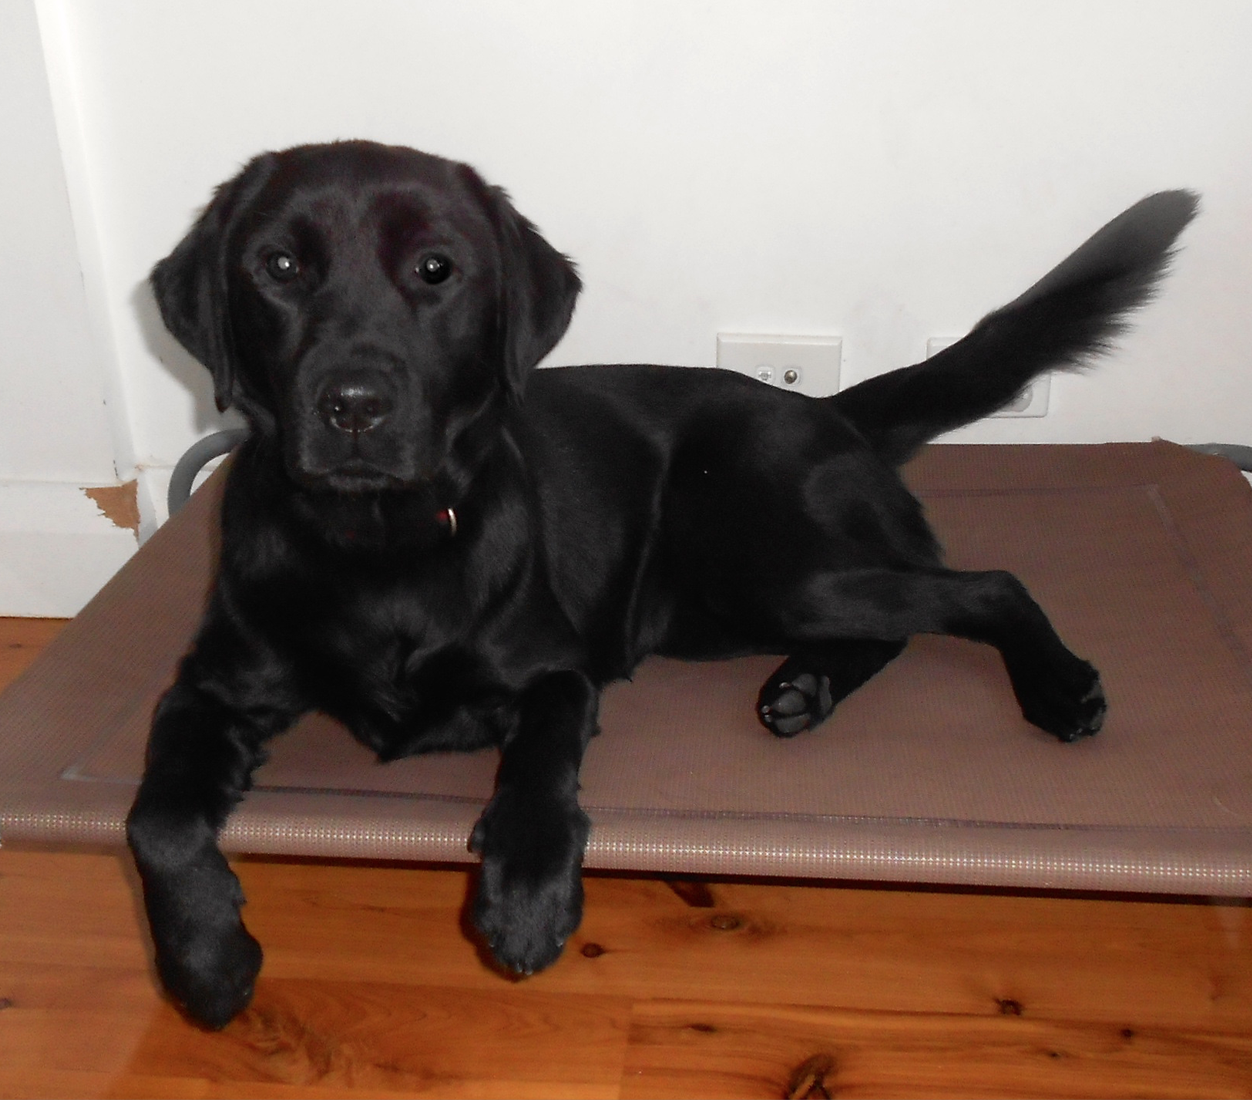 Lab Olive who loved training and treats